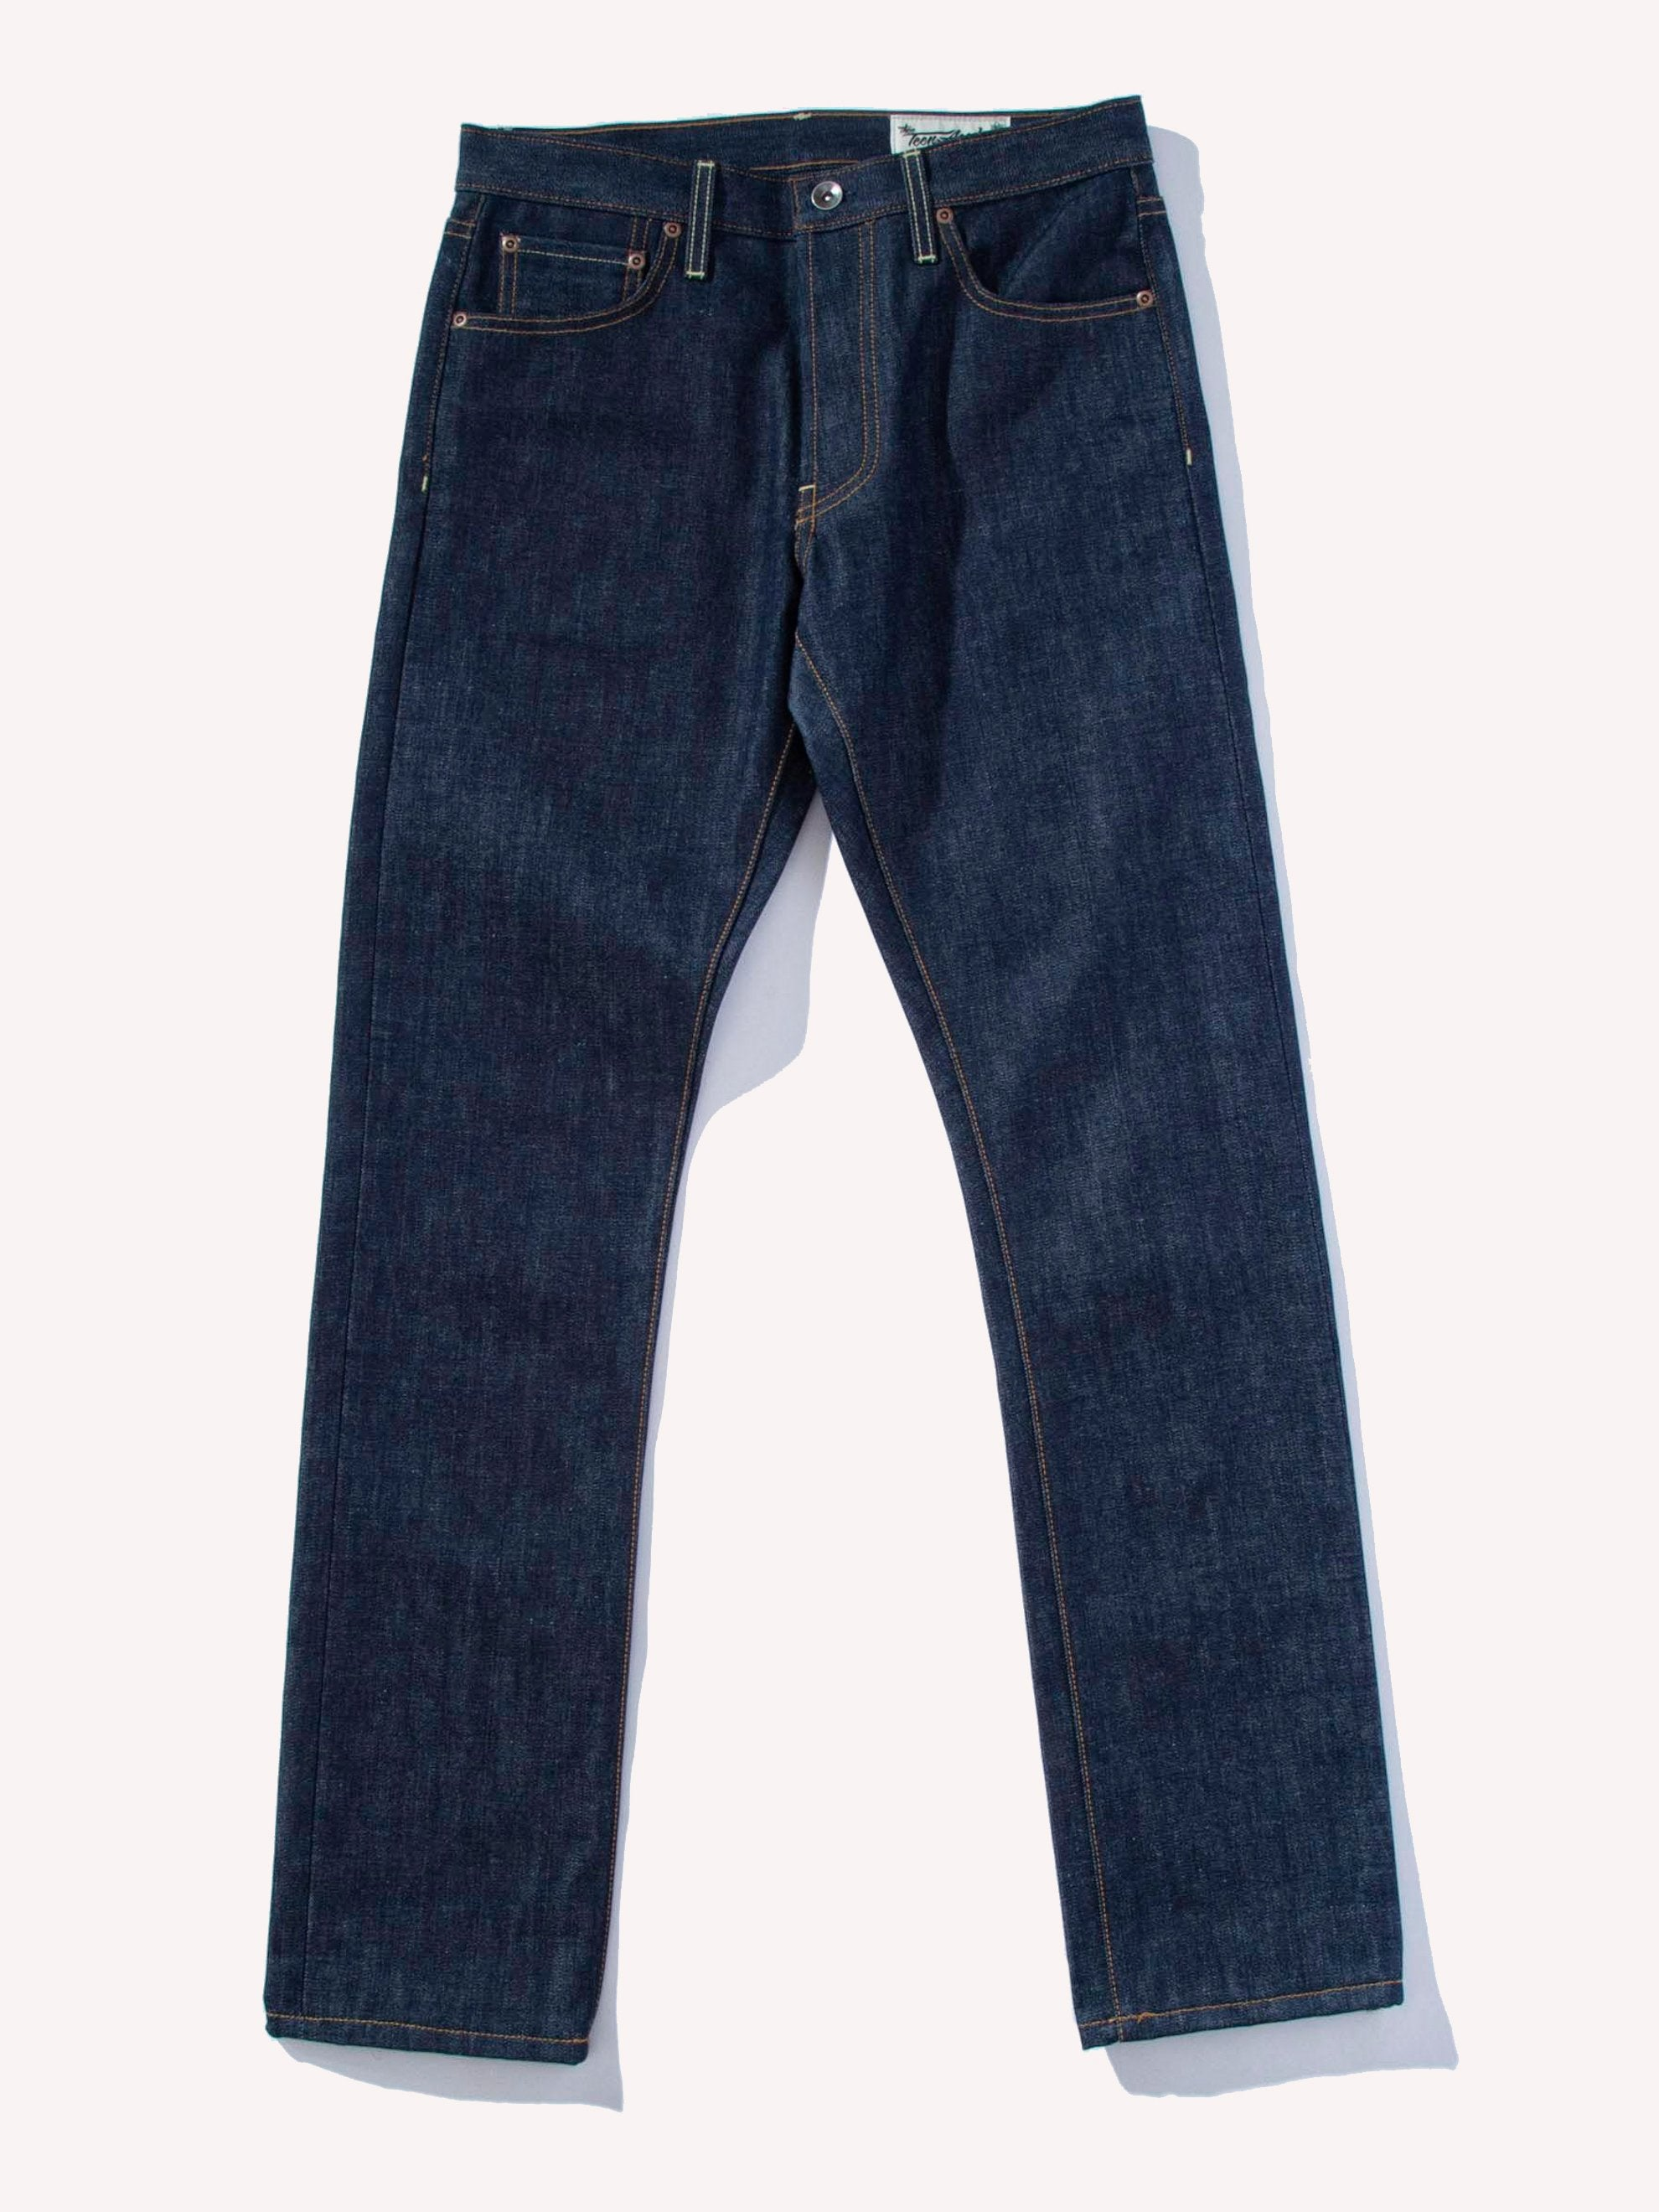 Indigo Mr. Wilson Union Jean 1